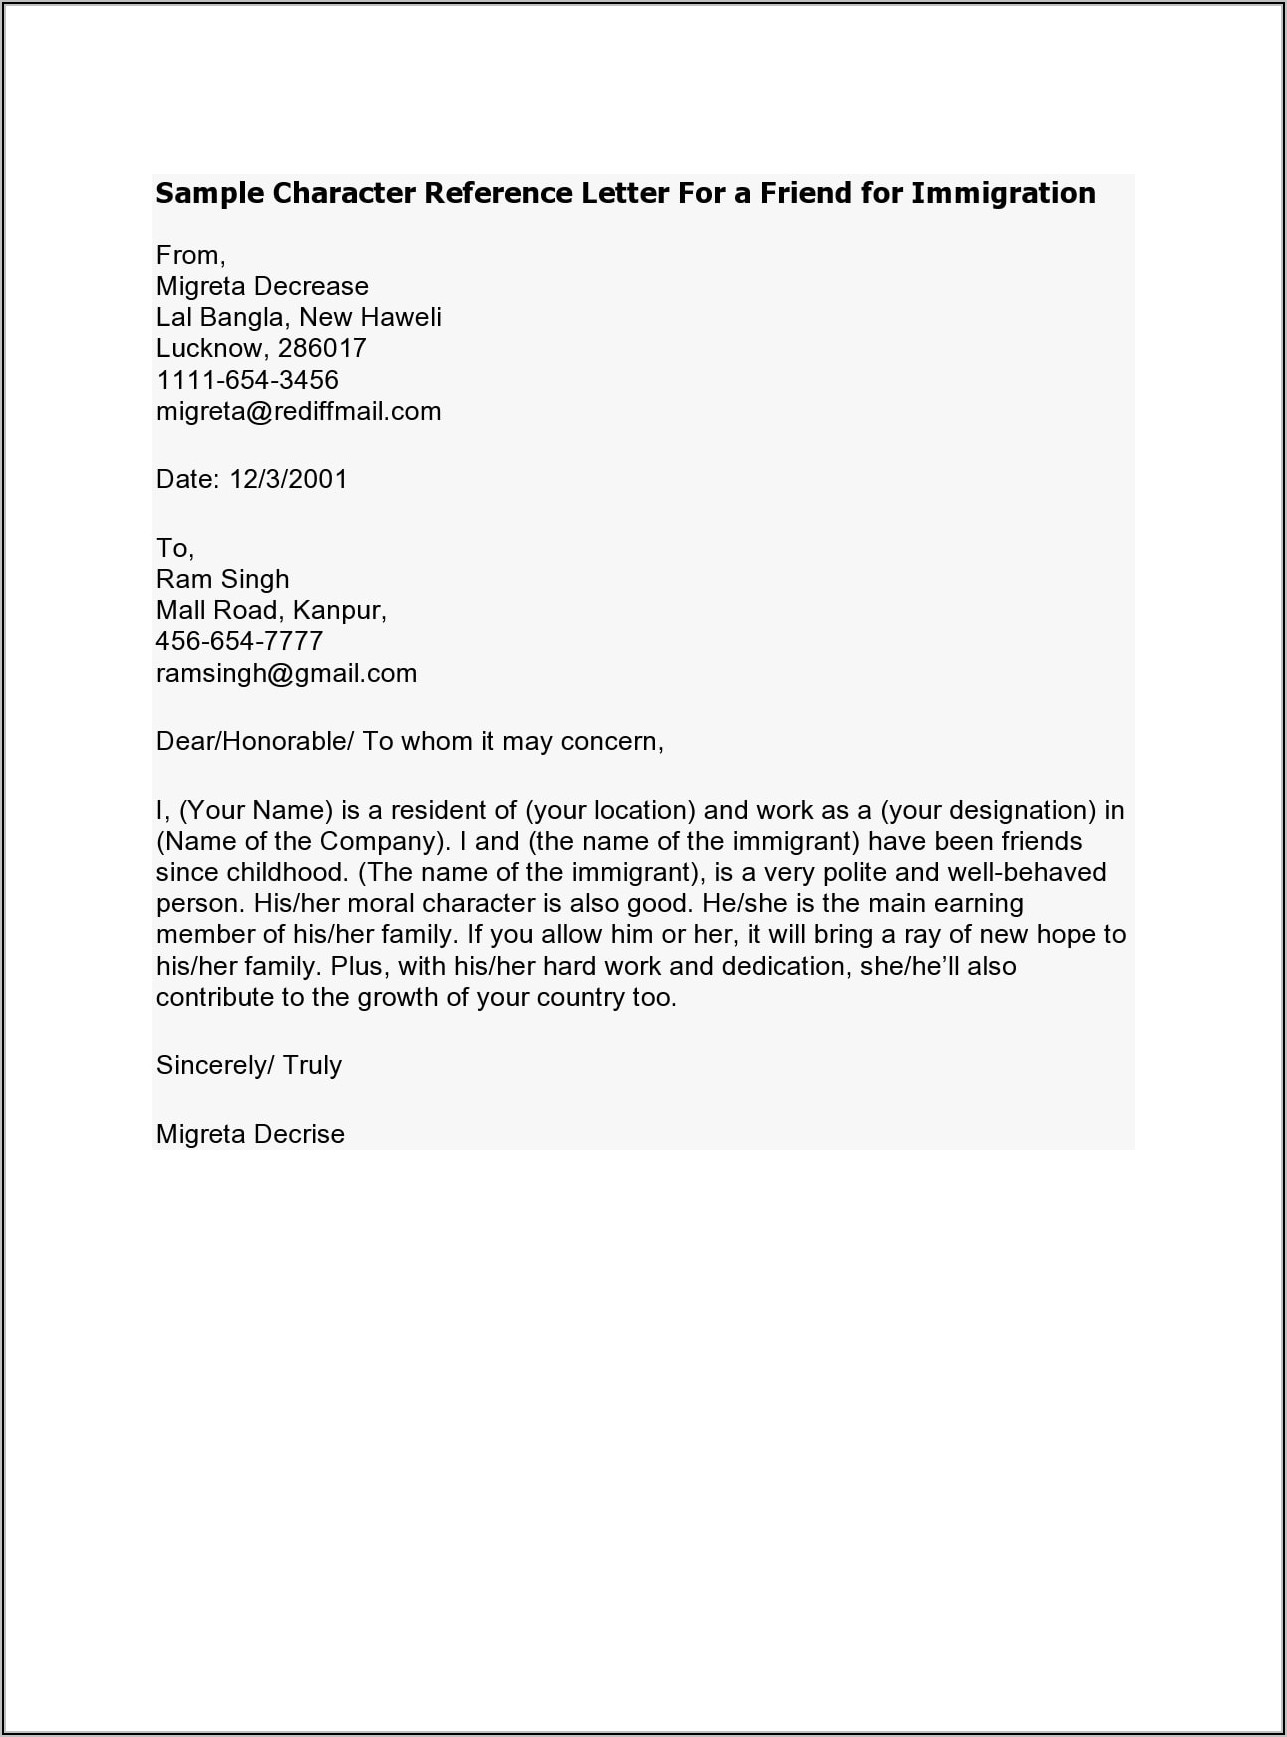 Friend Good Moral Character Letter For Immigration Sample